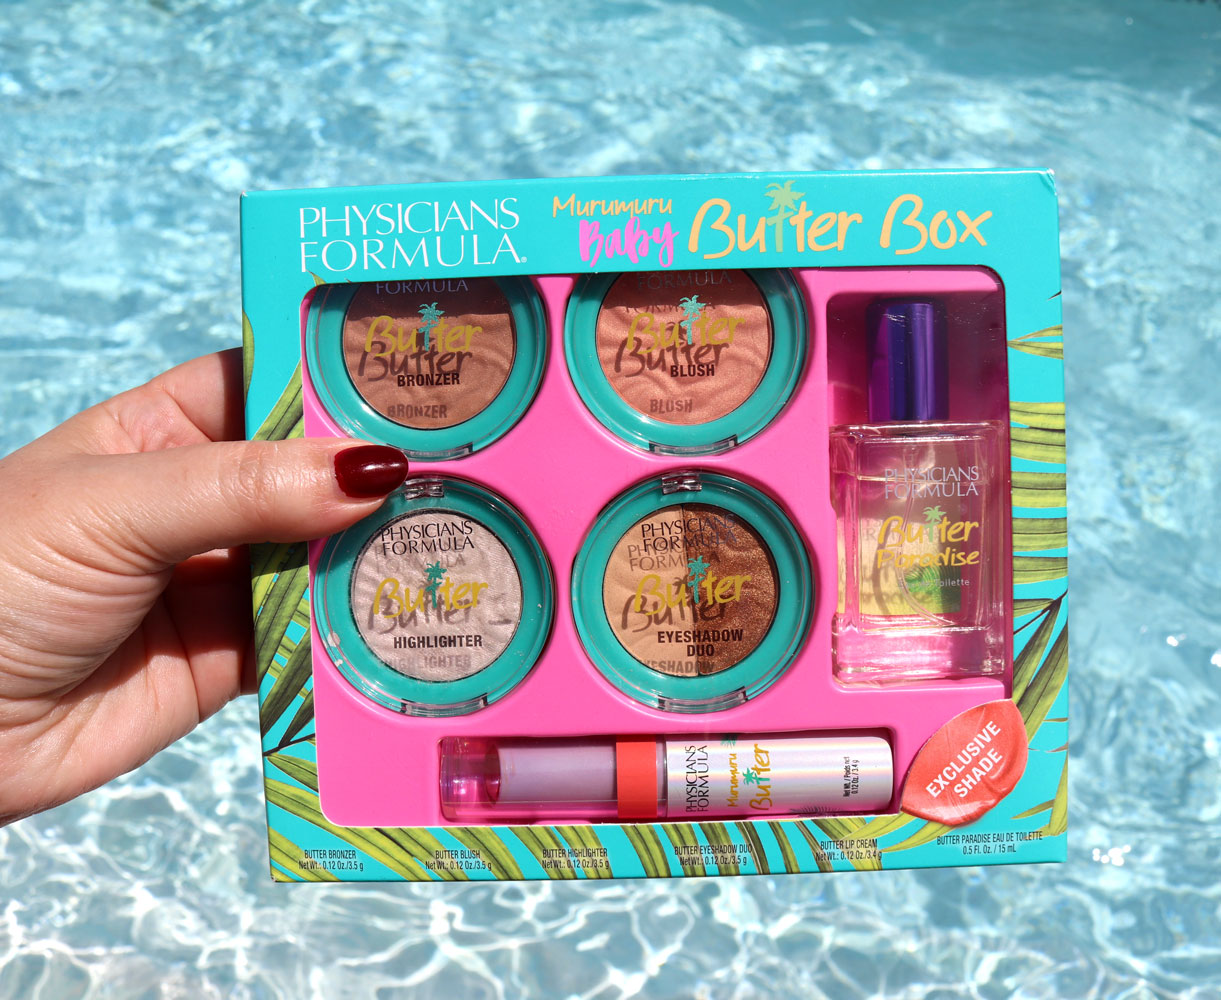 Physicians Formula Baby Butter Box